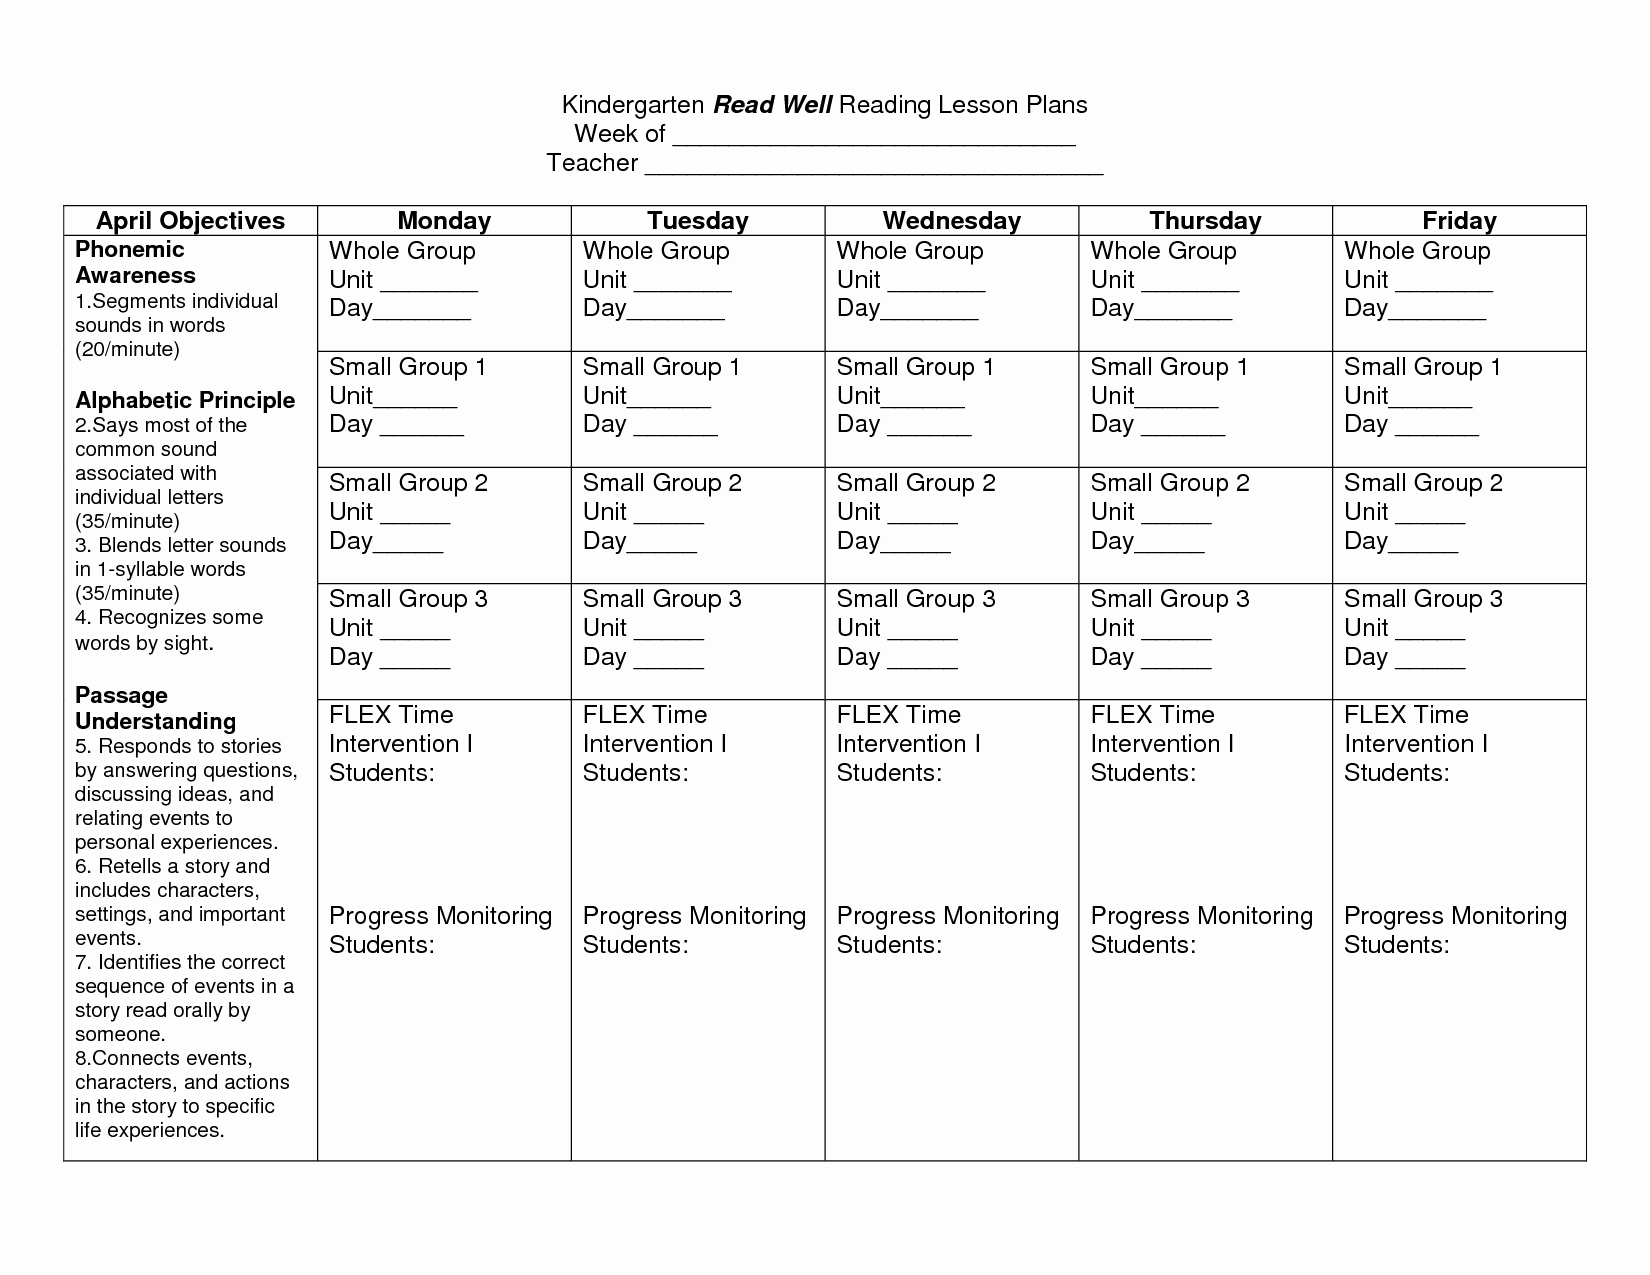 Kindergarten Lesson Plan Template Awesome Kindergarten Lesson Plan Template